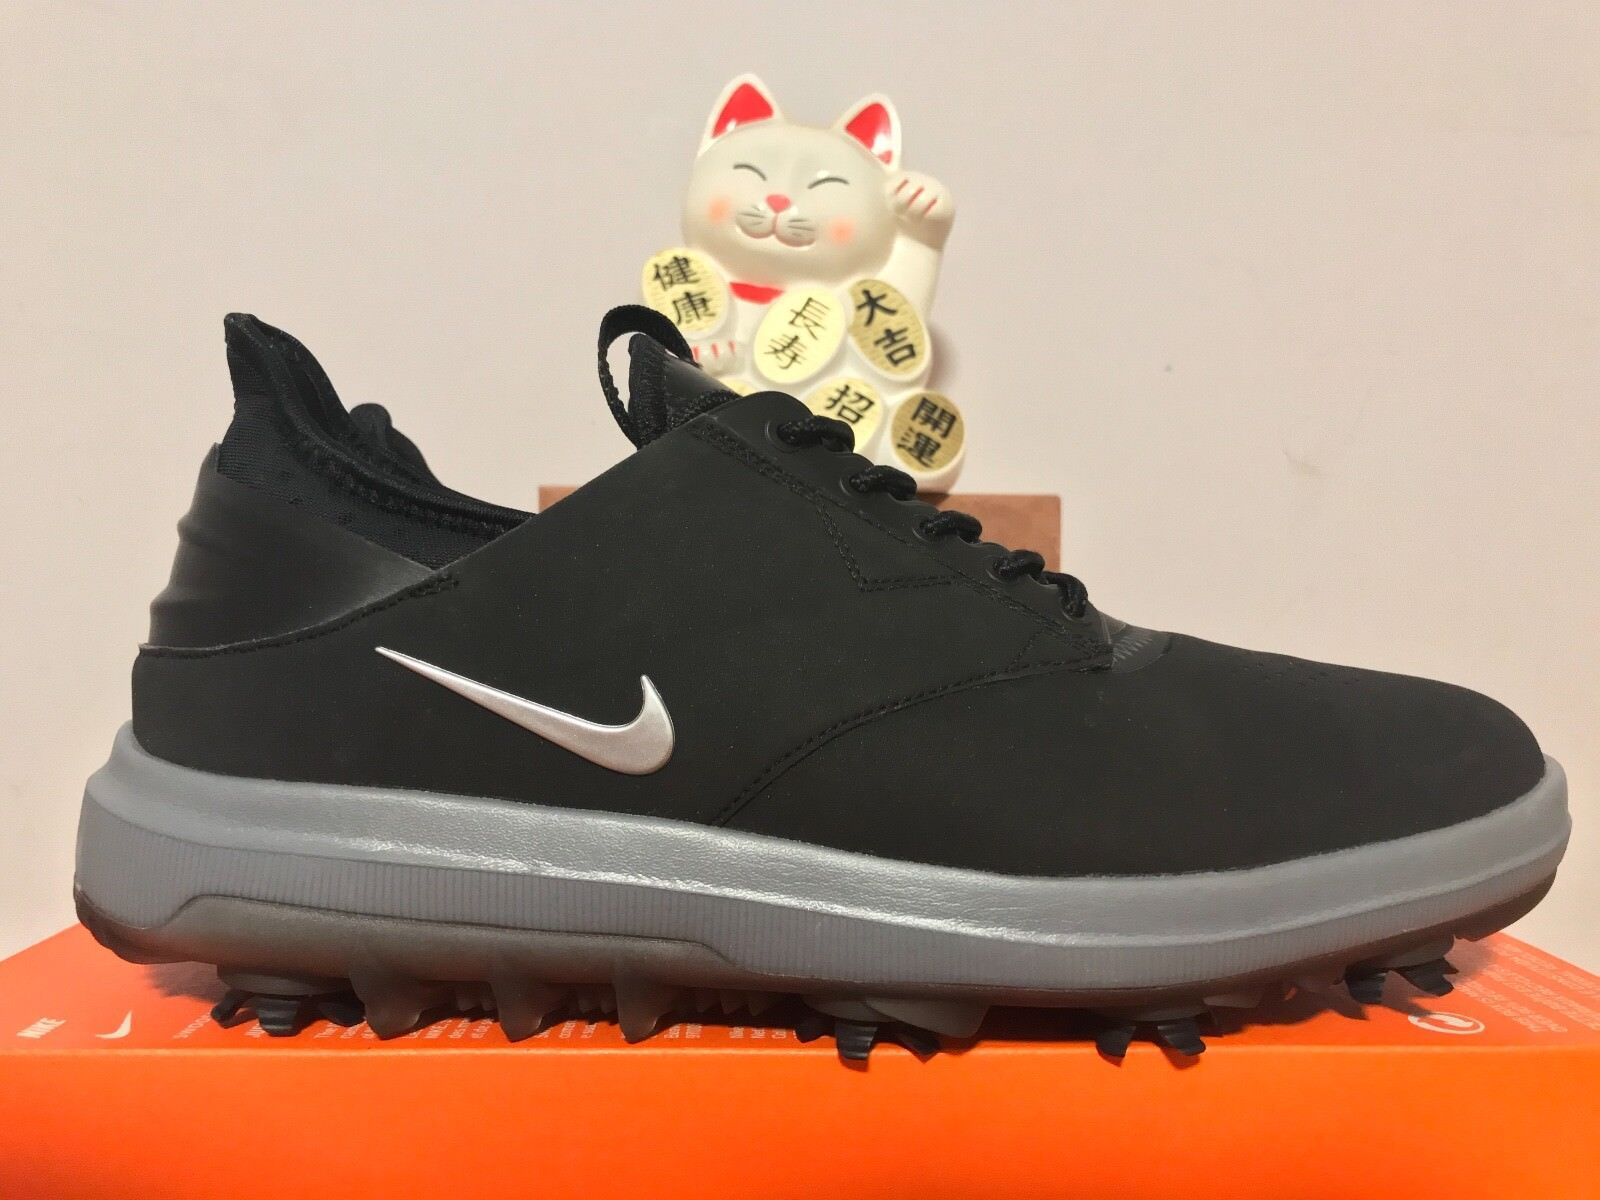 Nike Silver Air Zoom Direct Golf Shoes Black Metallic Silver Nike New Size 10 [923965-001] 89c17d